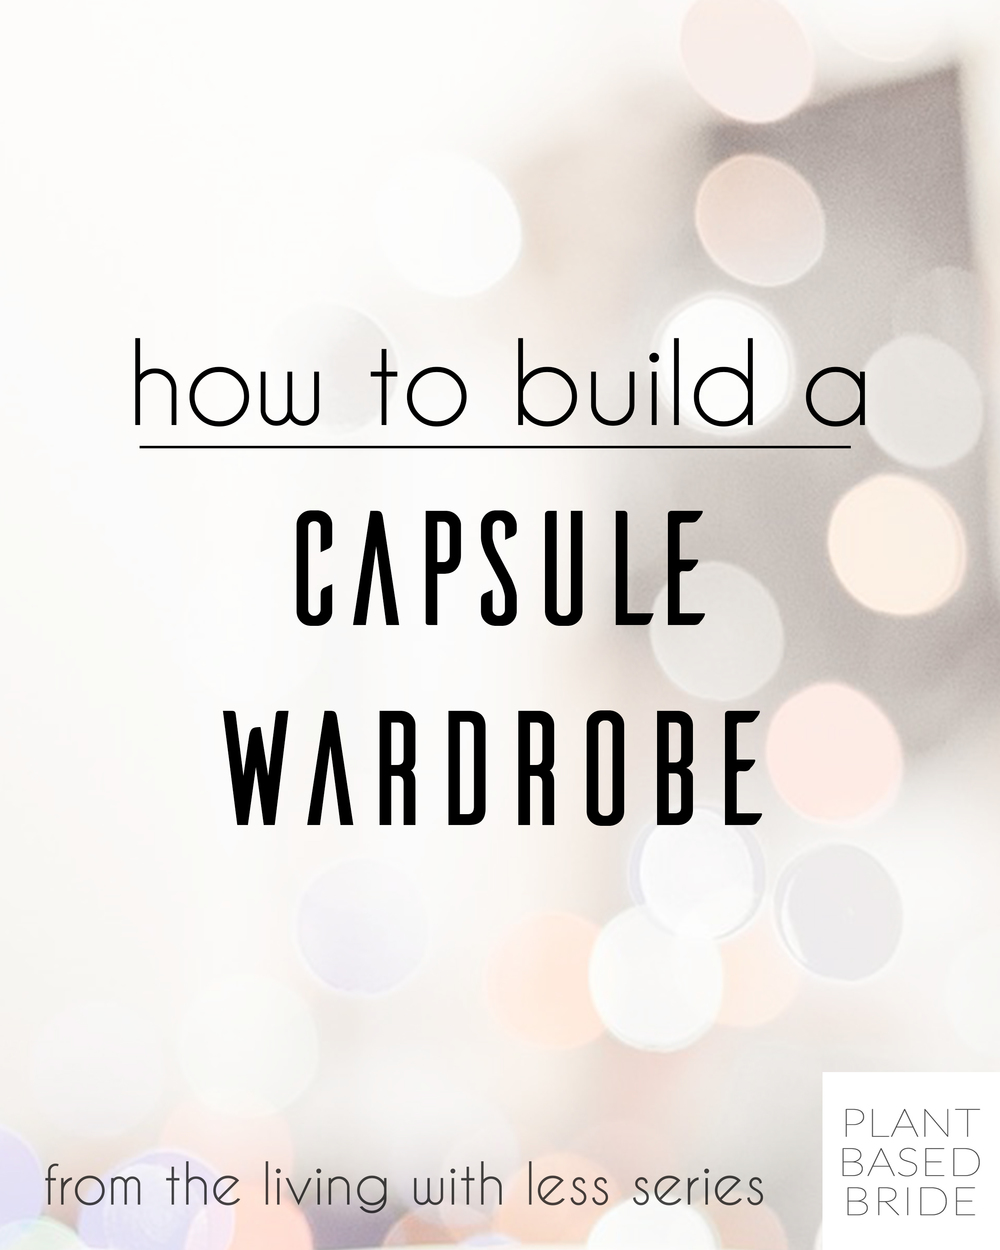 A must-pin!  Check out this easy, step-by-step guide to building a capsule wardrobe from plantbasedbride.com!